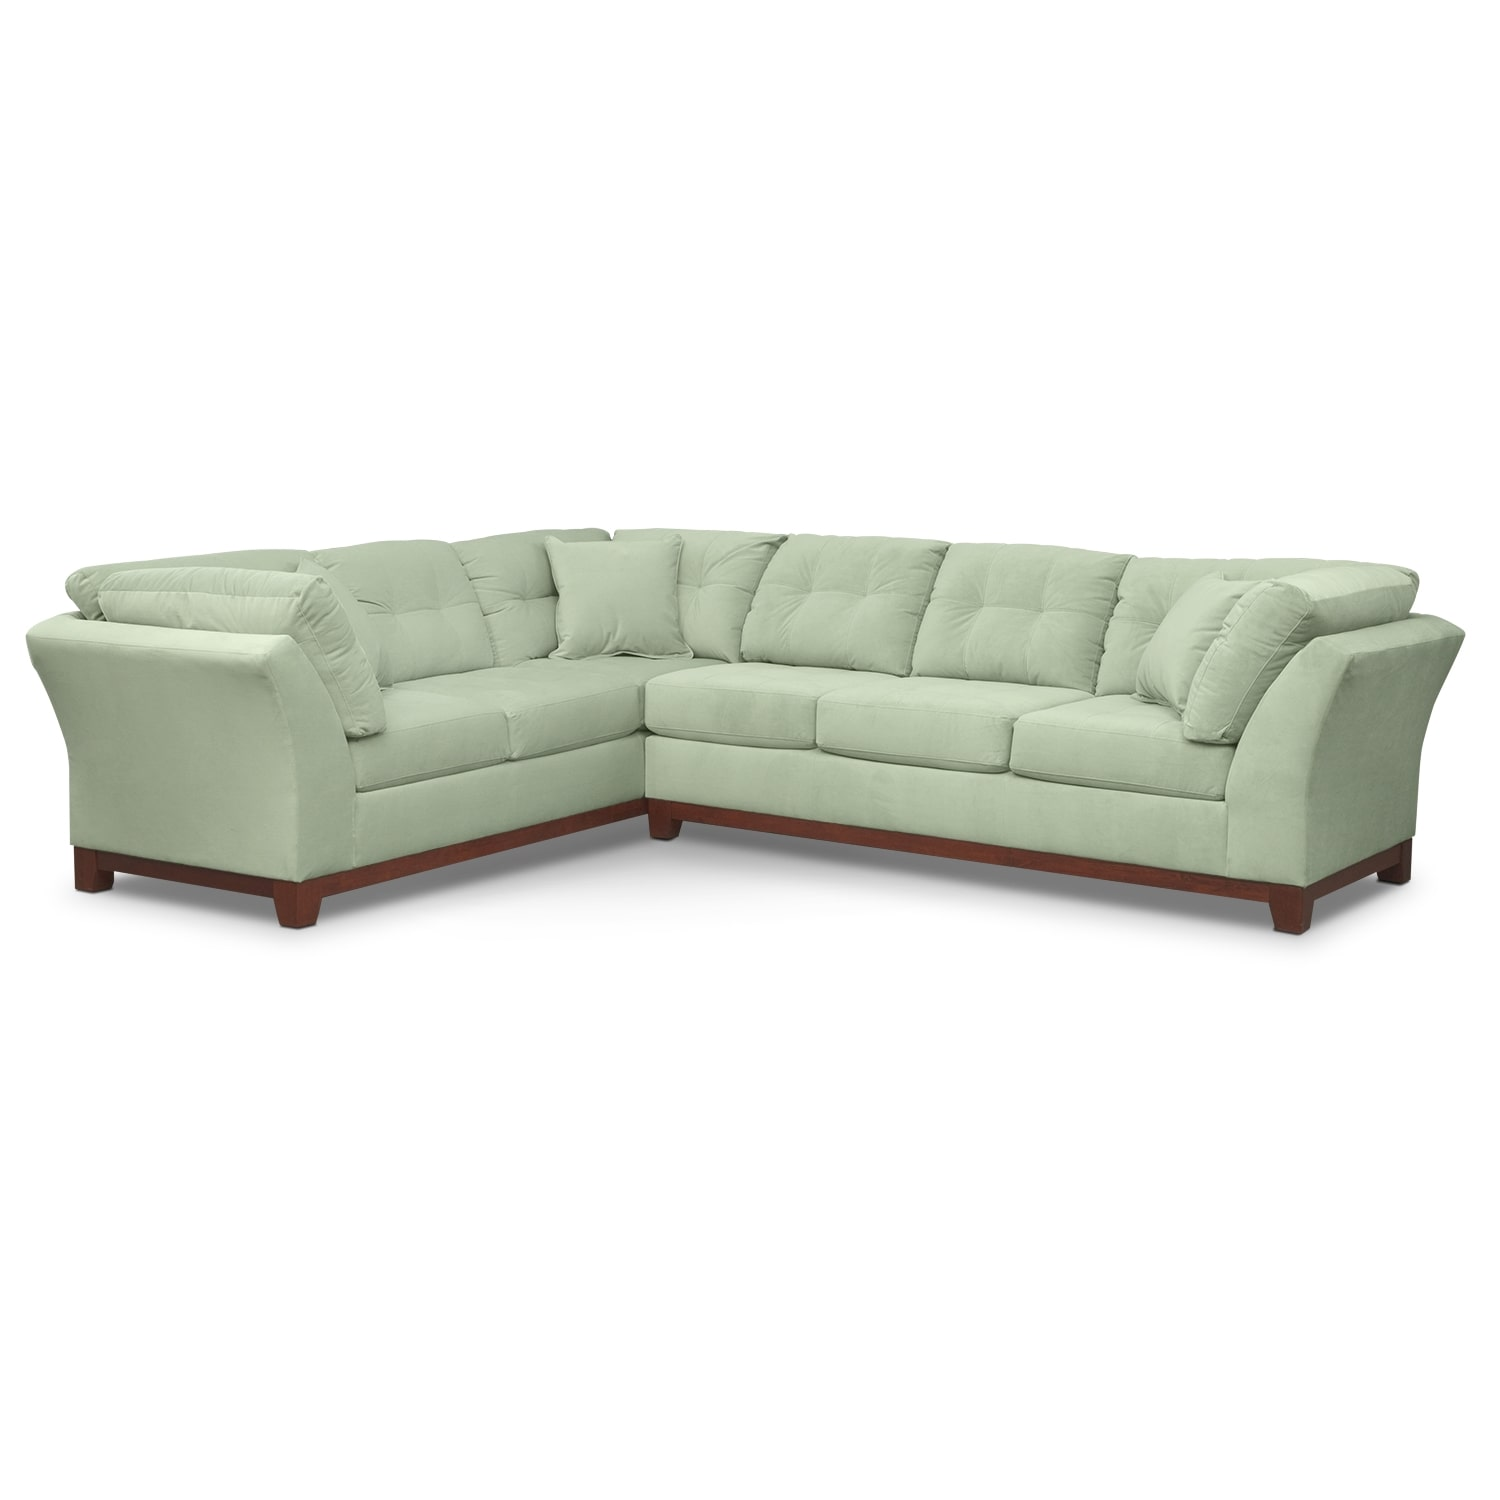 Sebring 2-Piece Sectional  with Right-Facing Sofa - Spa